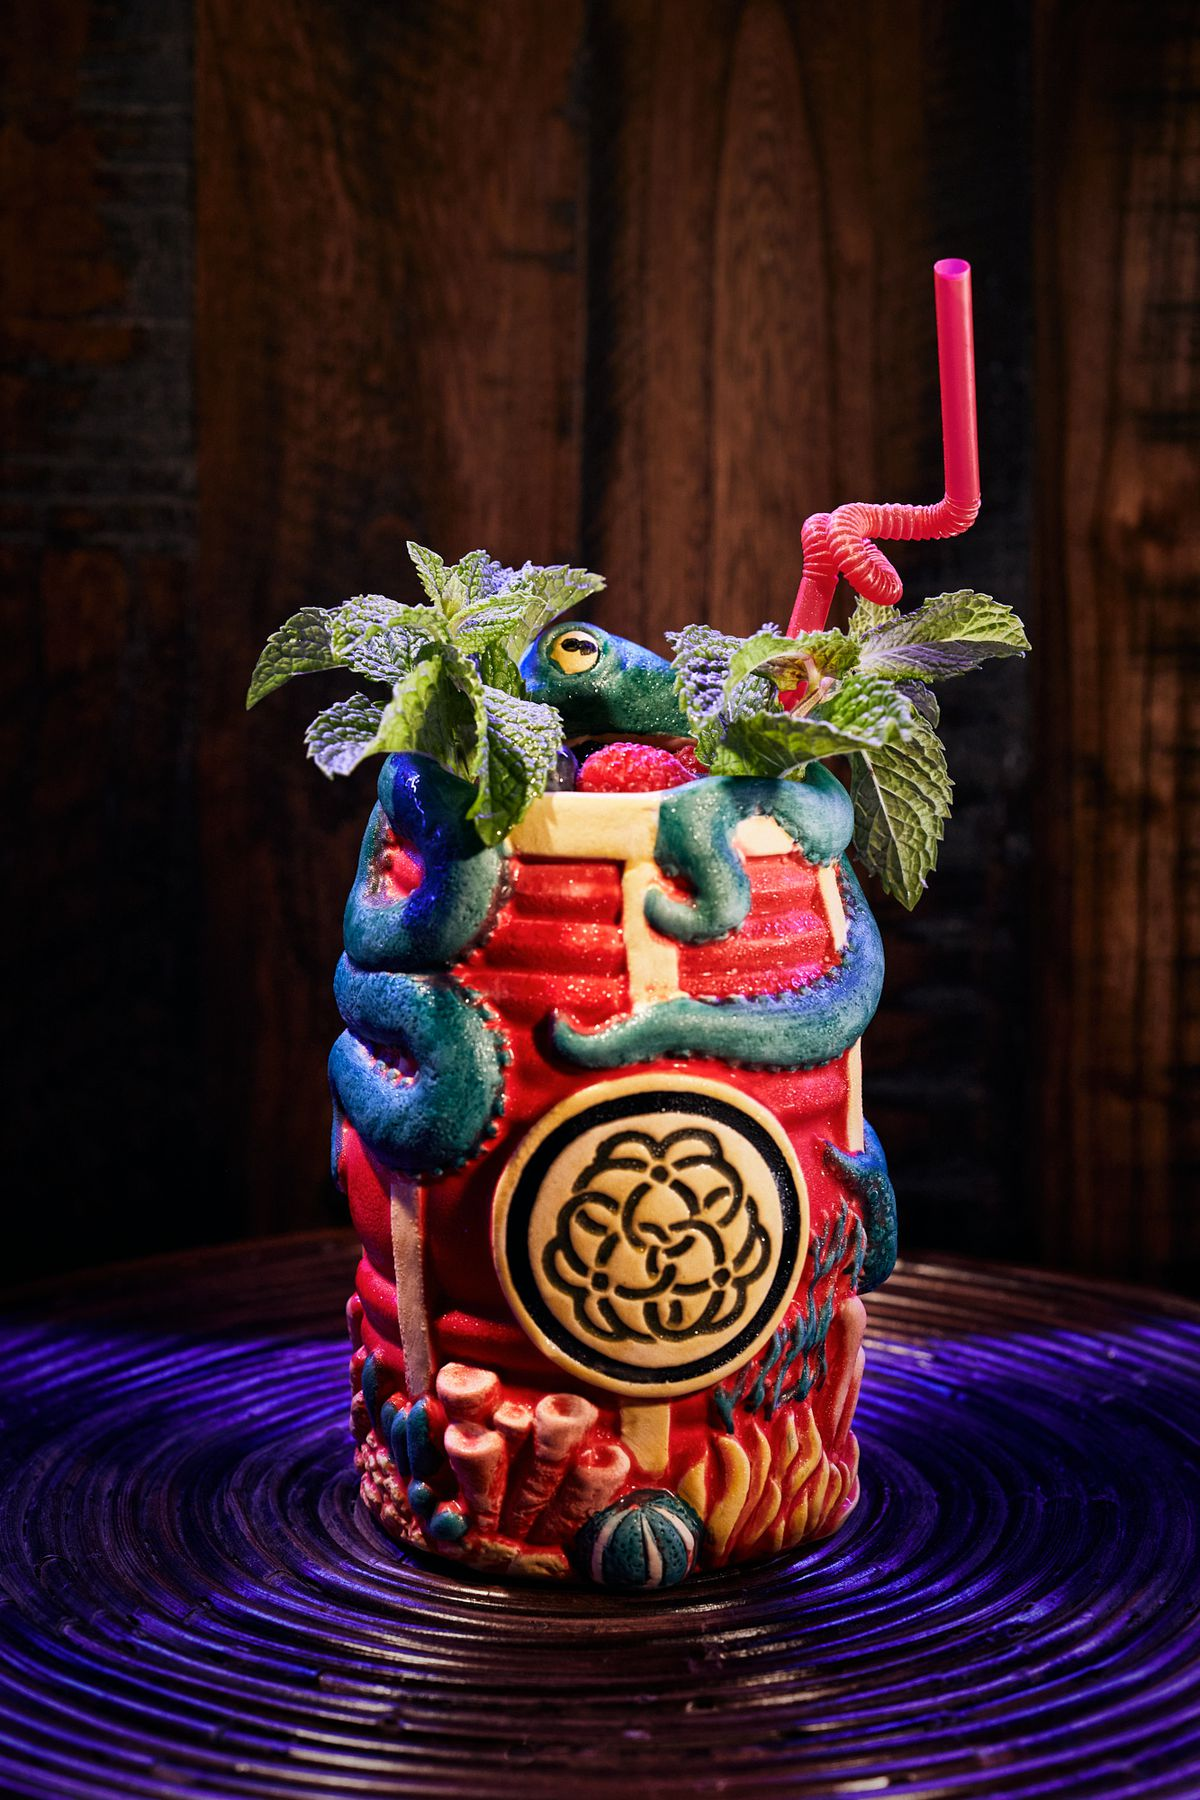 A tiki mug of a red barrel with a black-and-white insignia with a blue octopus hugging it